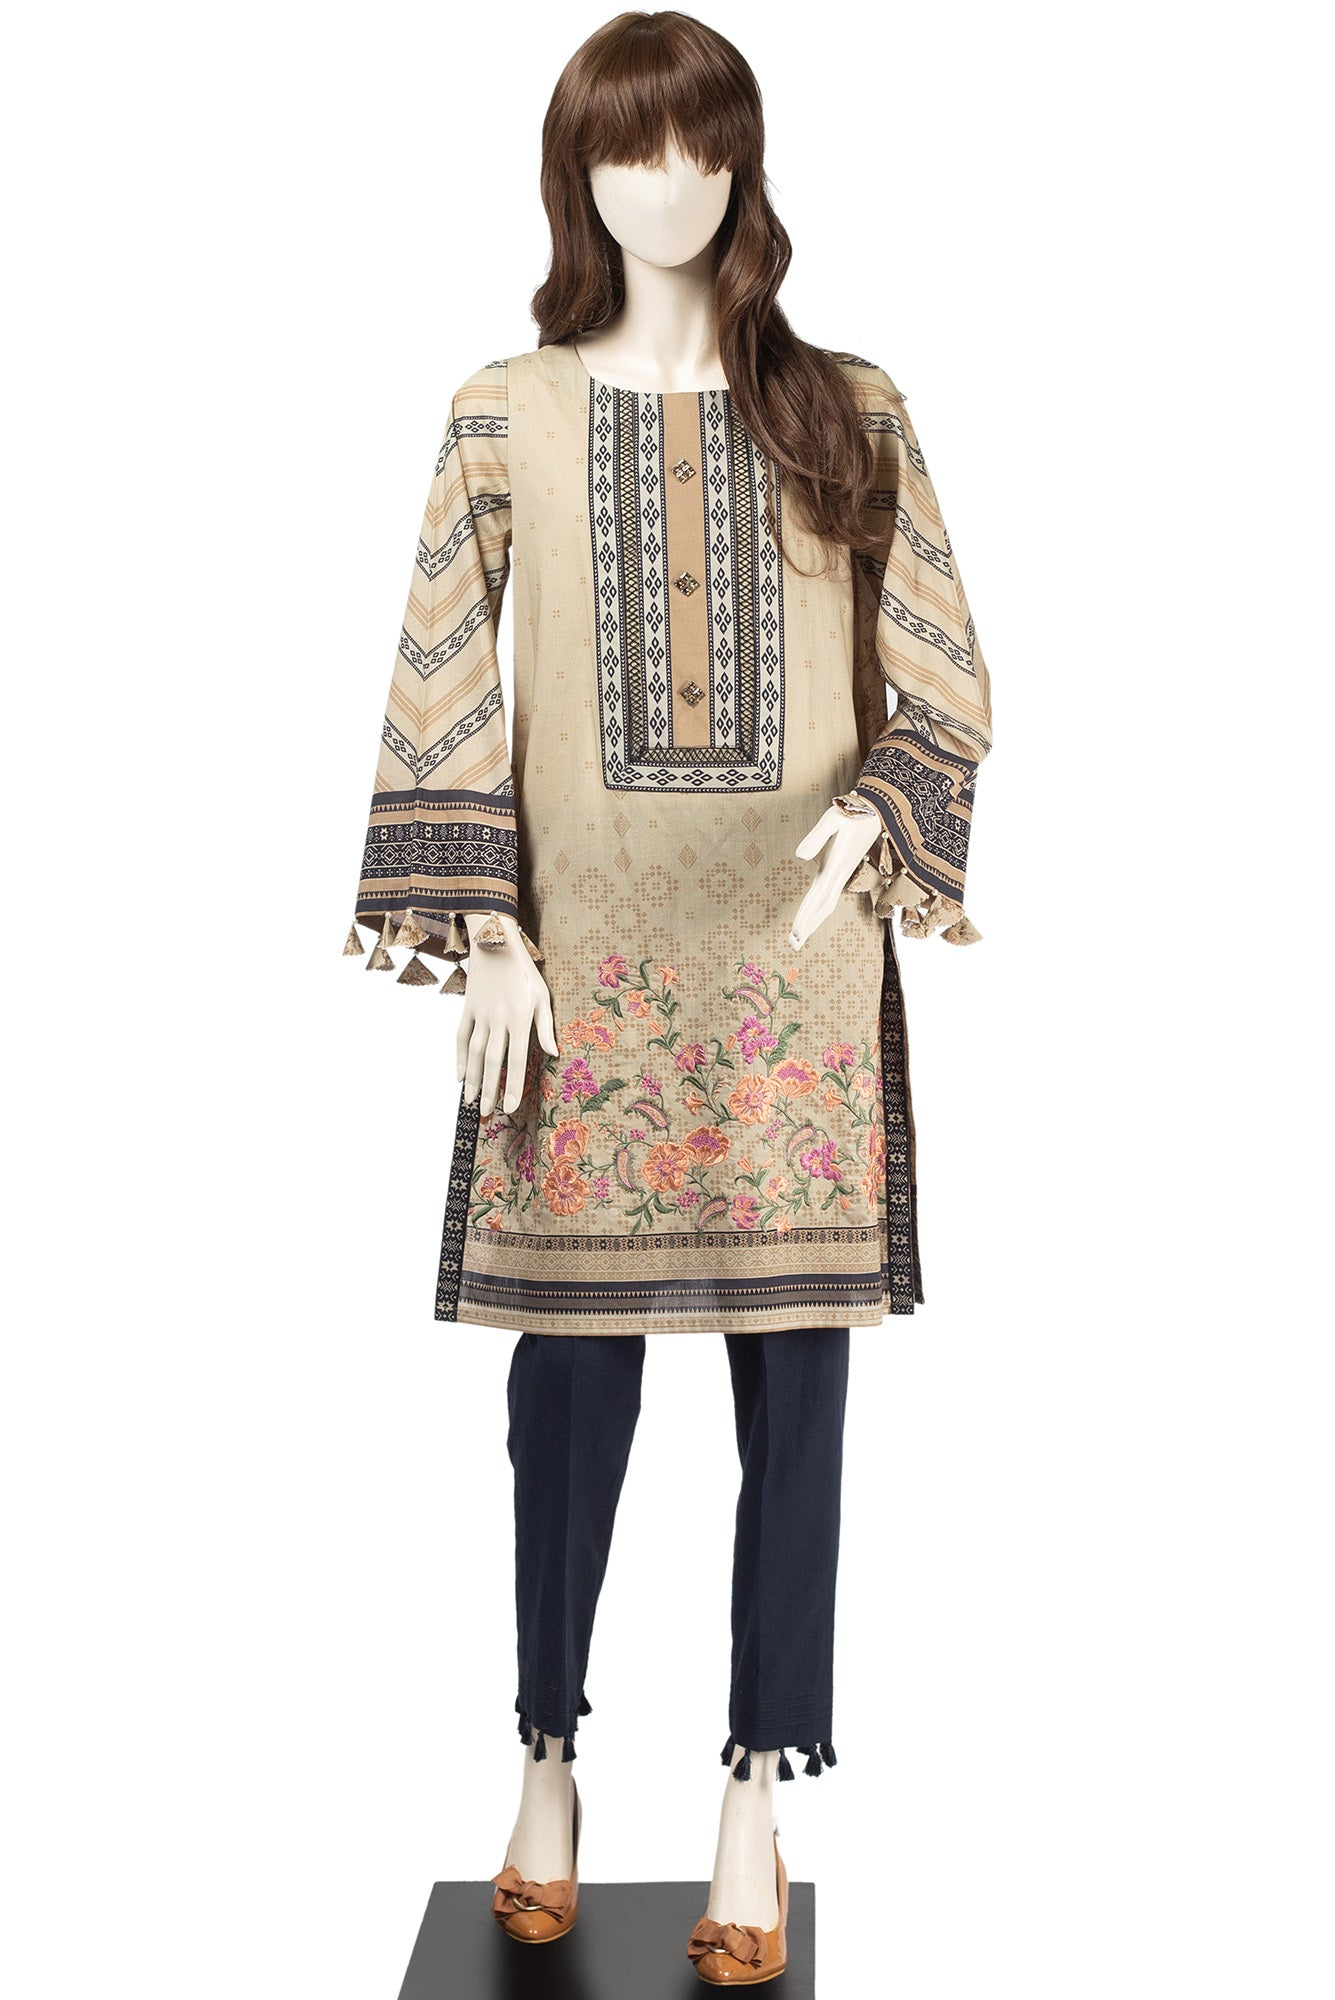 FLOKATI UB-1915-02D (EMBROIDERED SHIRT) - Saya